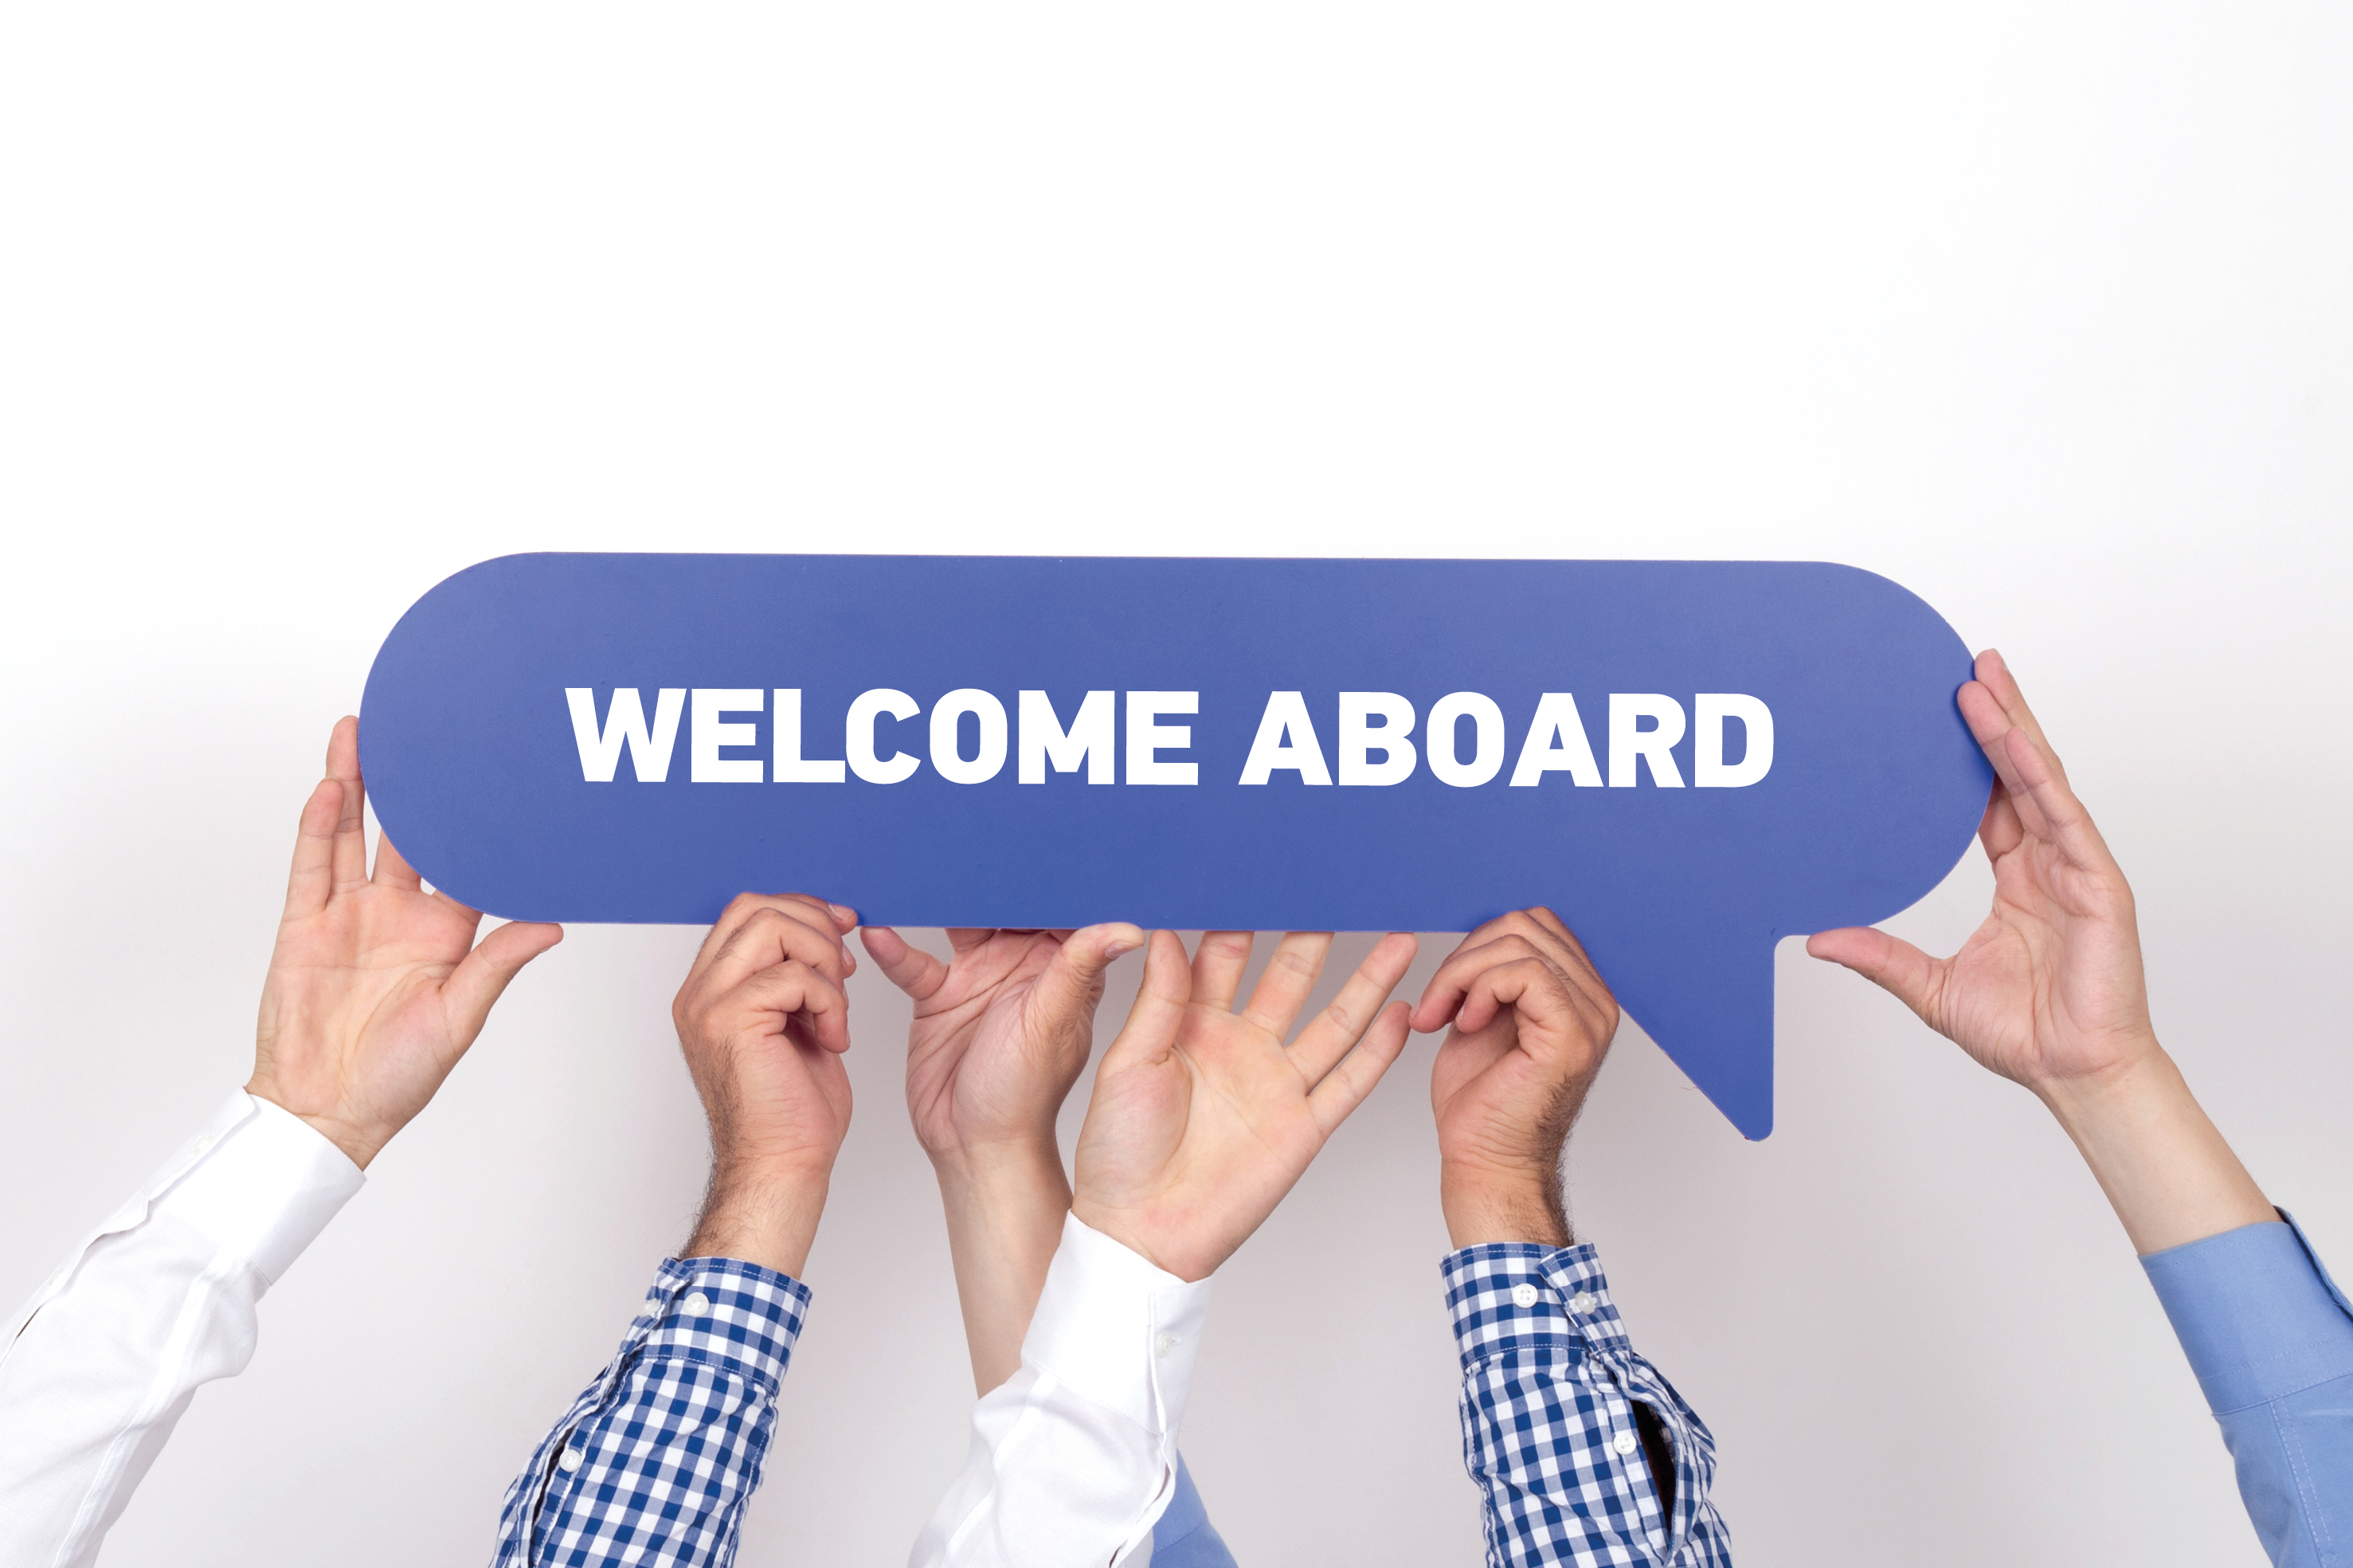 5 Onboarding Practices Used By Top Brands